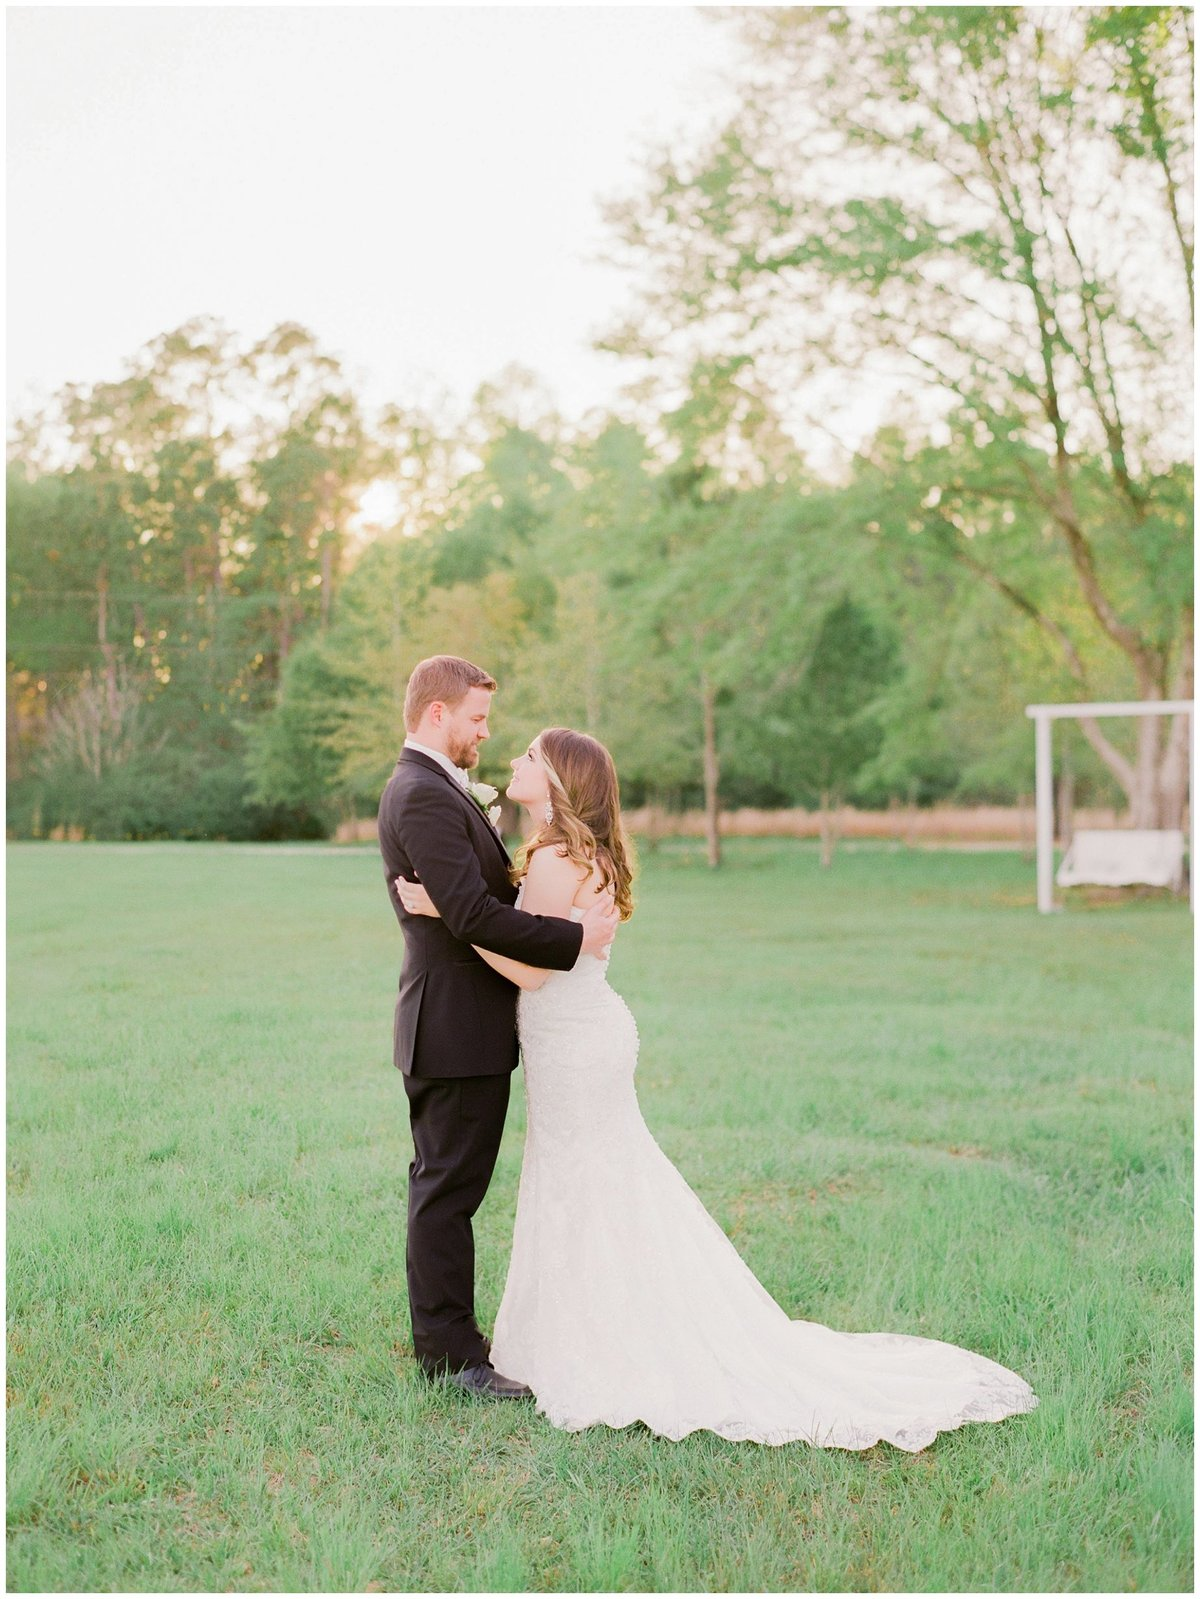 Jesse-Carleton-Panama City Florida-Wedding-Photographer-Barn Weddings-Session-Photography-Rosie Creek Farms-destination photographer_0148